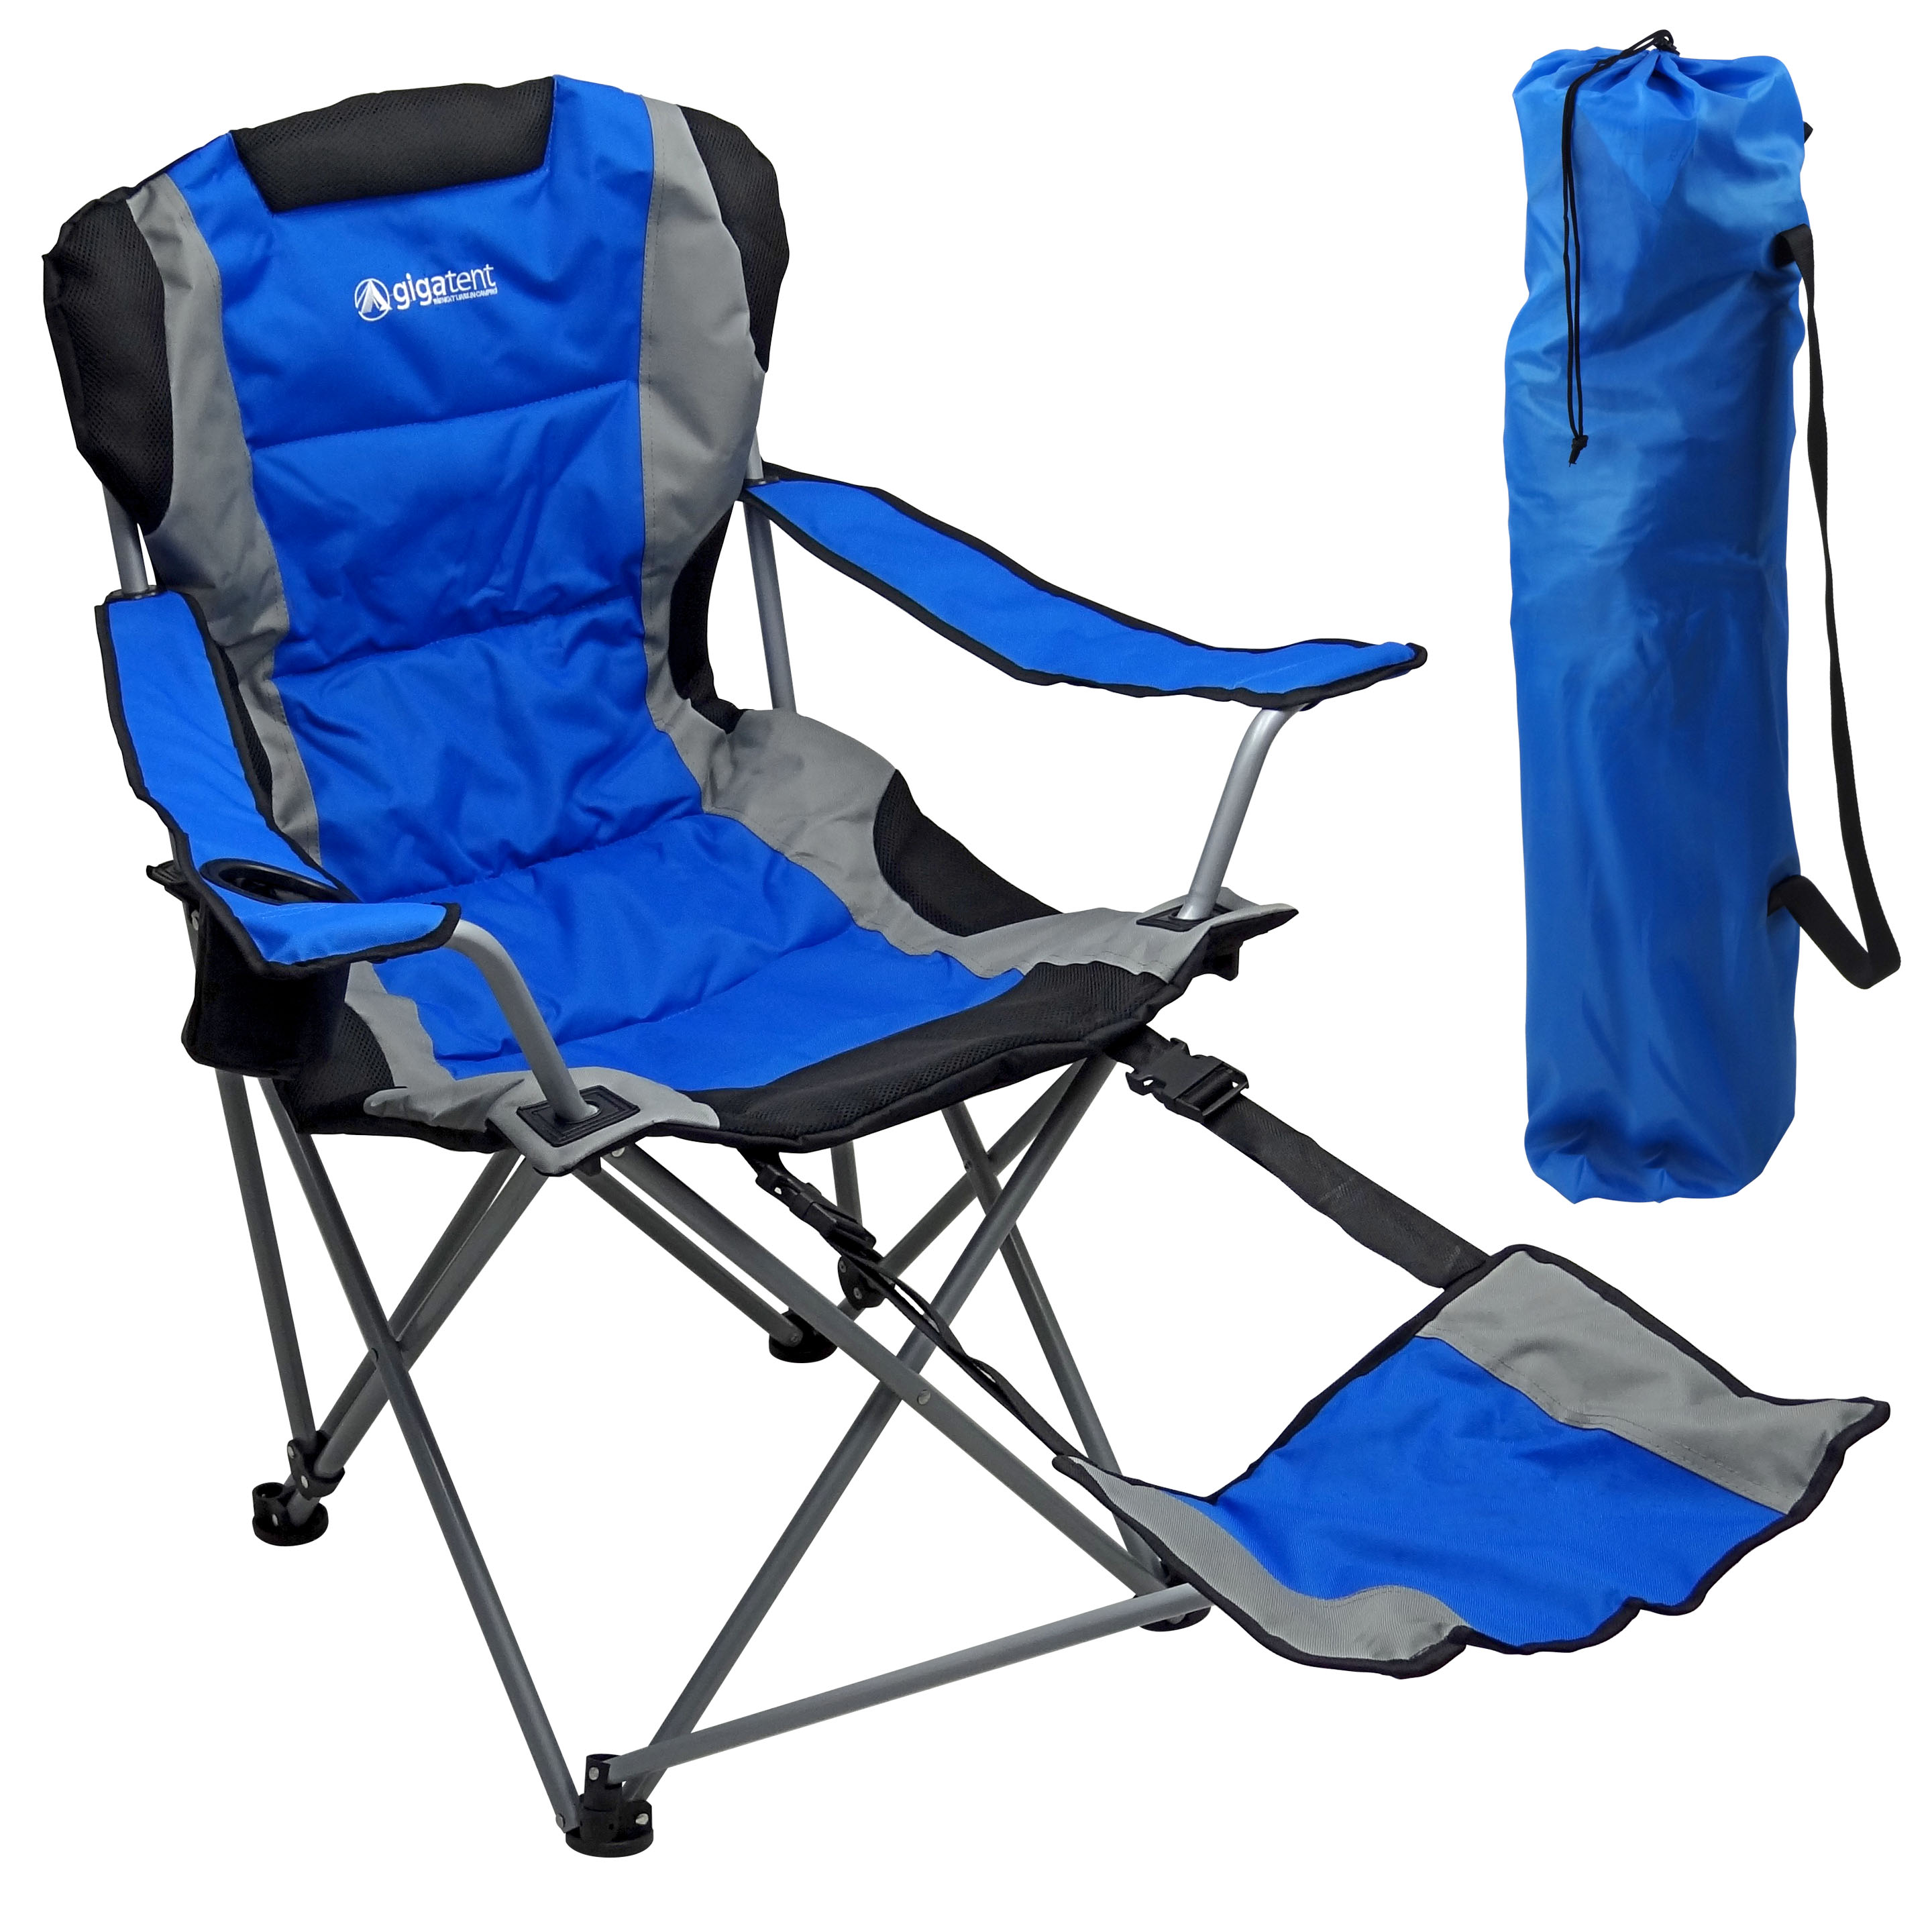 Camping Chair With Footrest Blue  Gigatent